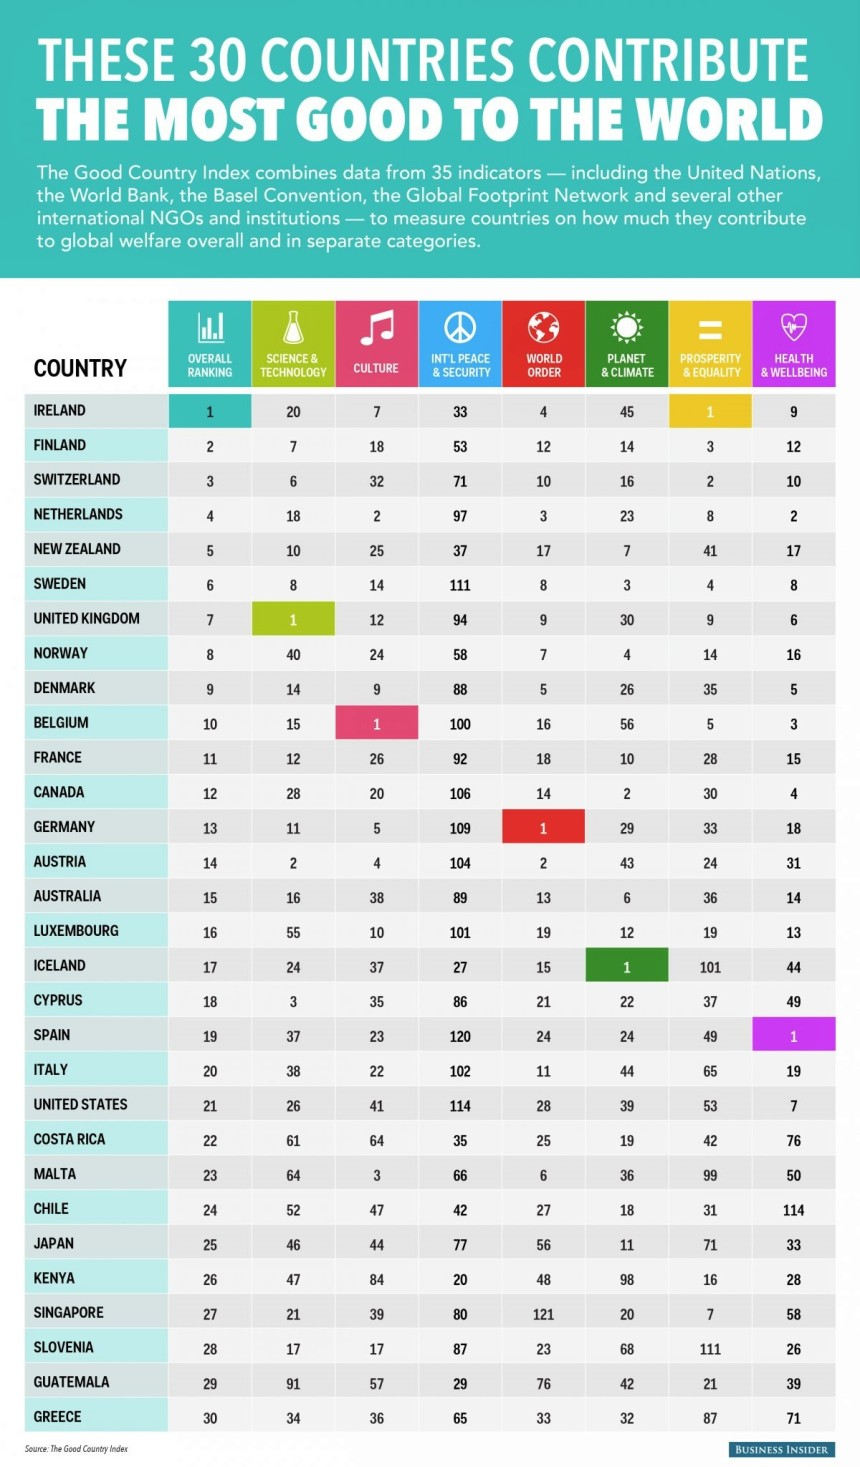 Countries that contribute the most good to the world